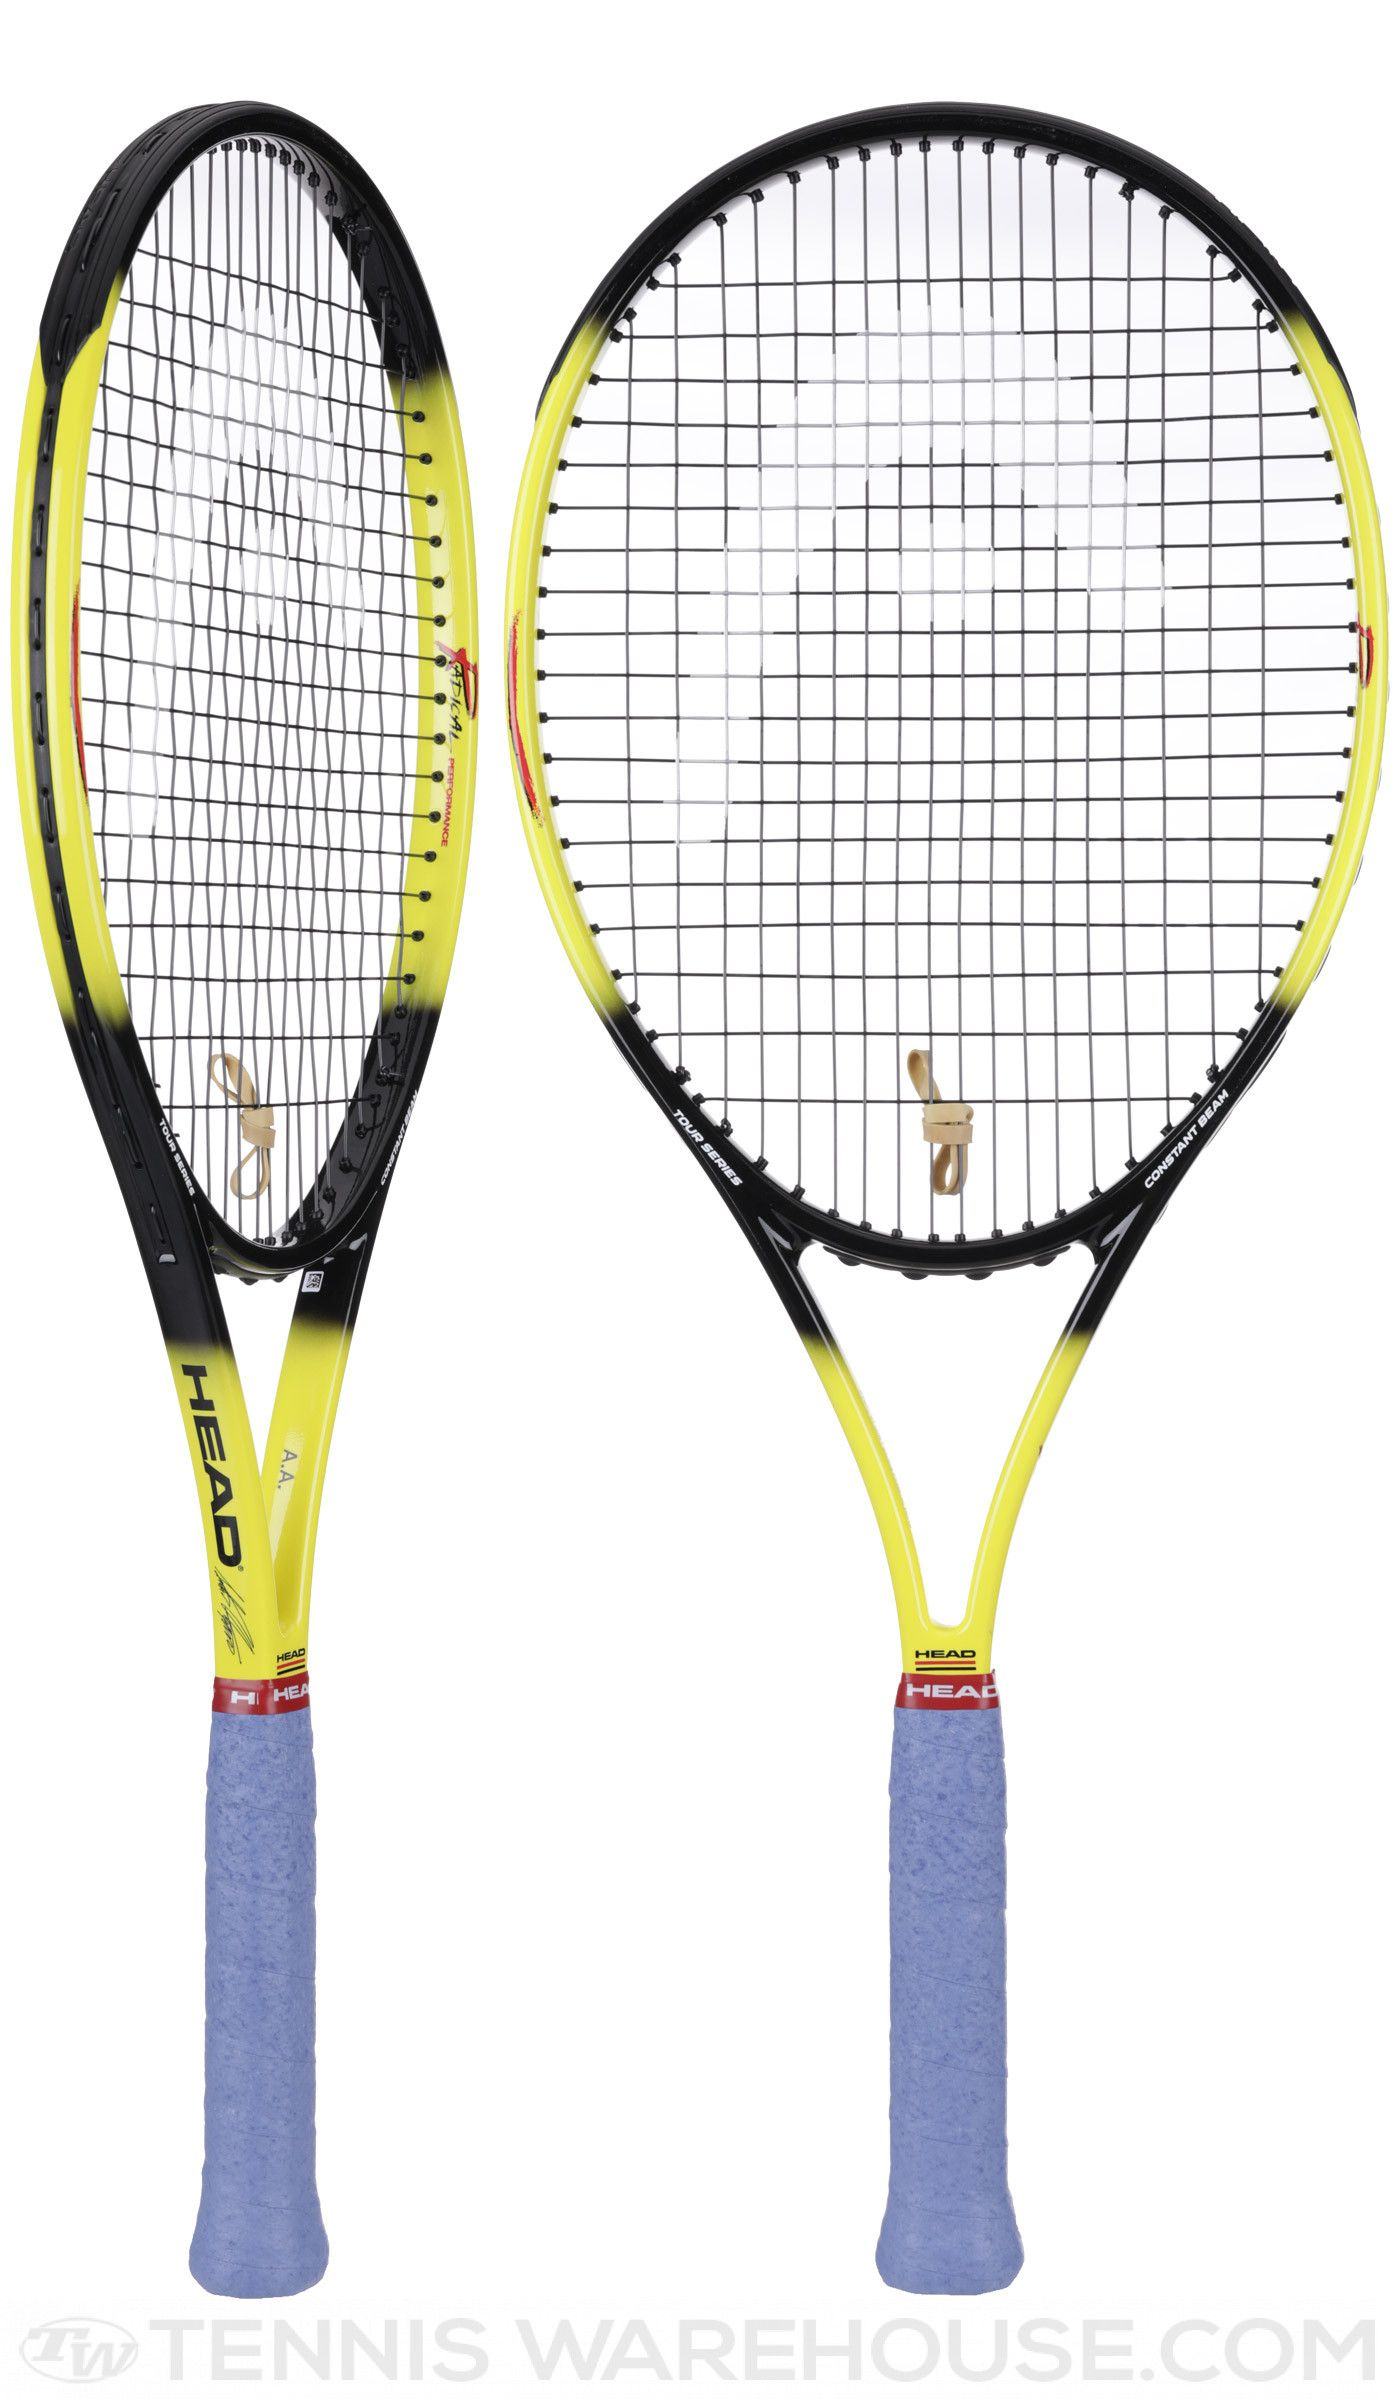 Andre Agassi S Endorsed Racket Returns To The Shelves Get Your Head Radical Oversize Ltd Racquet Headtennis Agassi